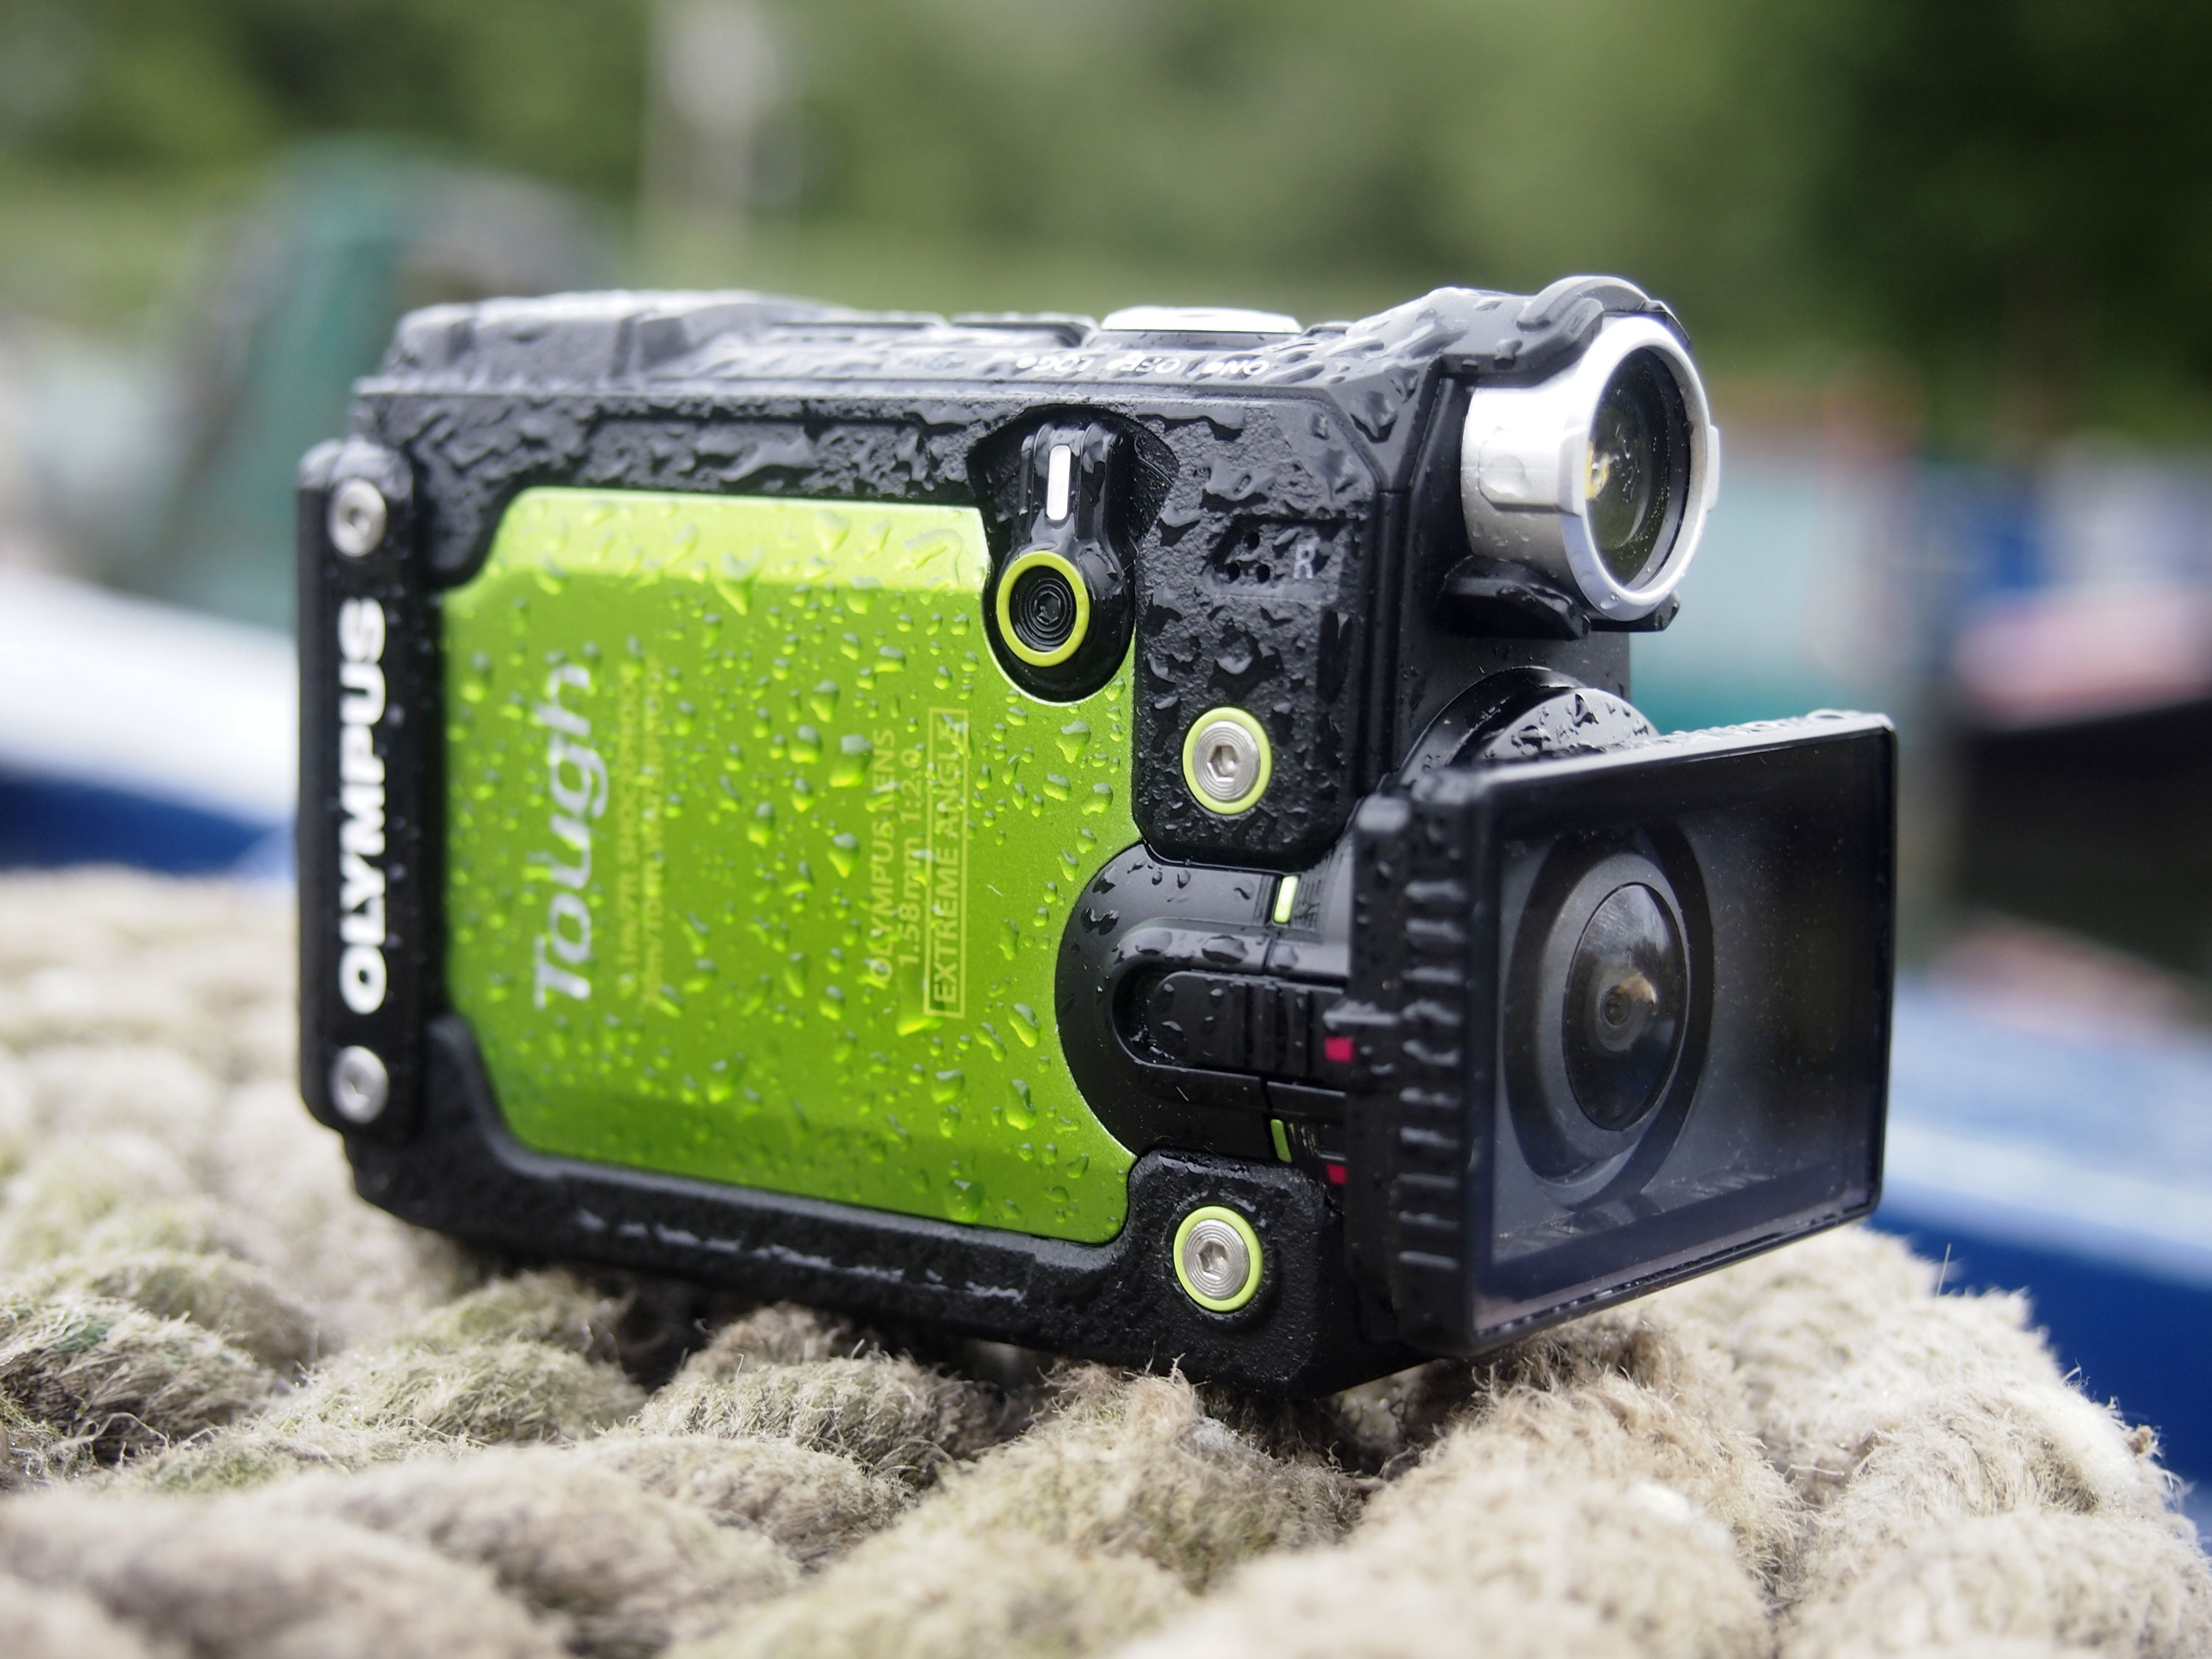 Olympus Tough Tg Tracker Review